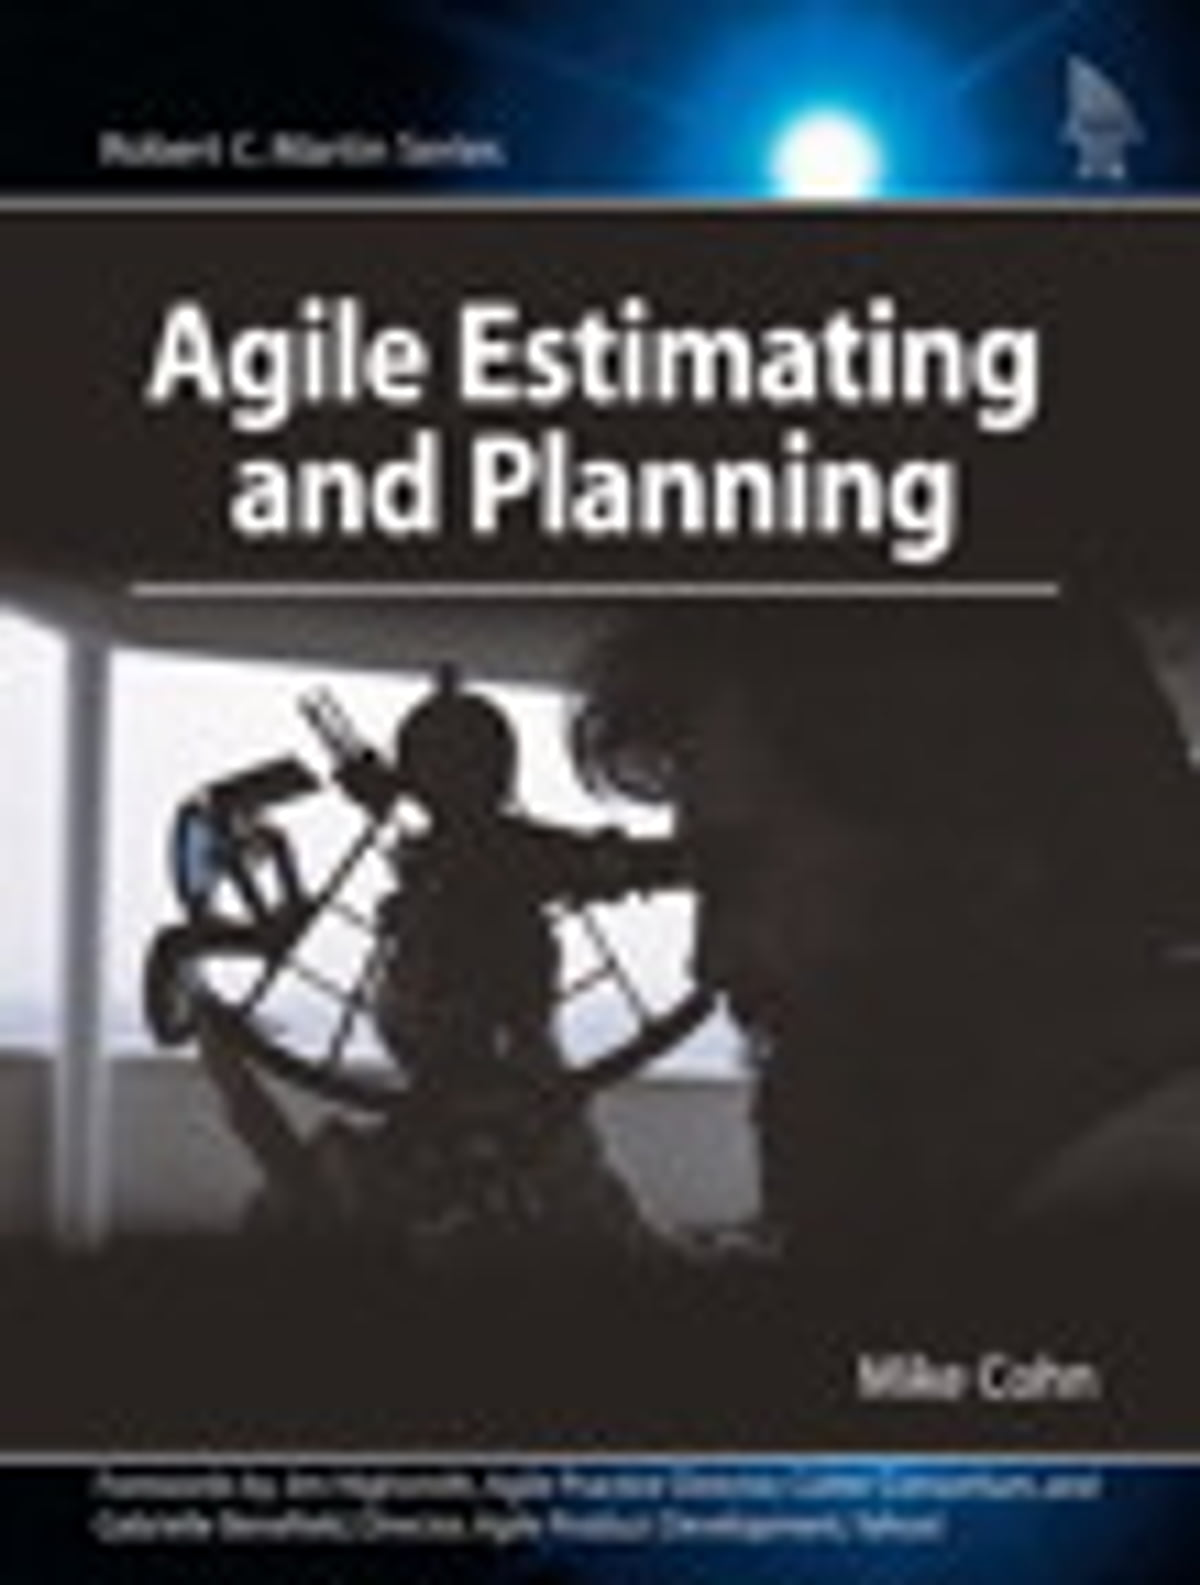 Agile Estimating And Planning Ebook By Mike Cohn  9780132703109  Kobo